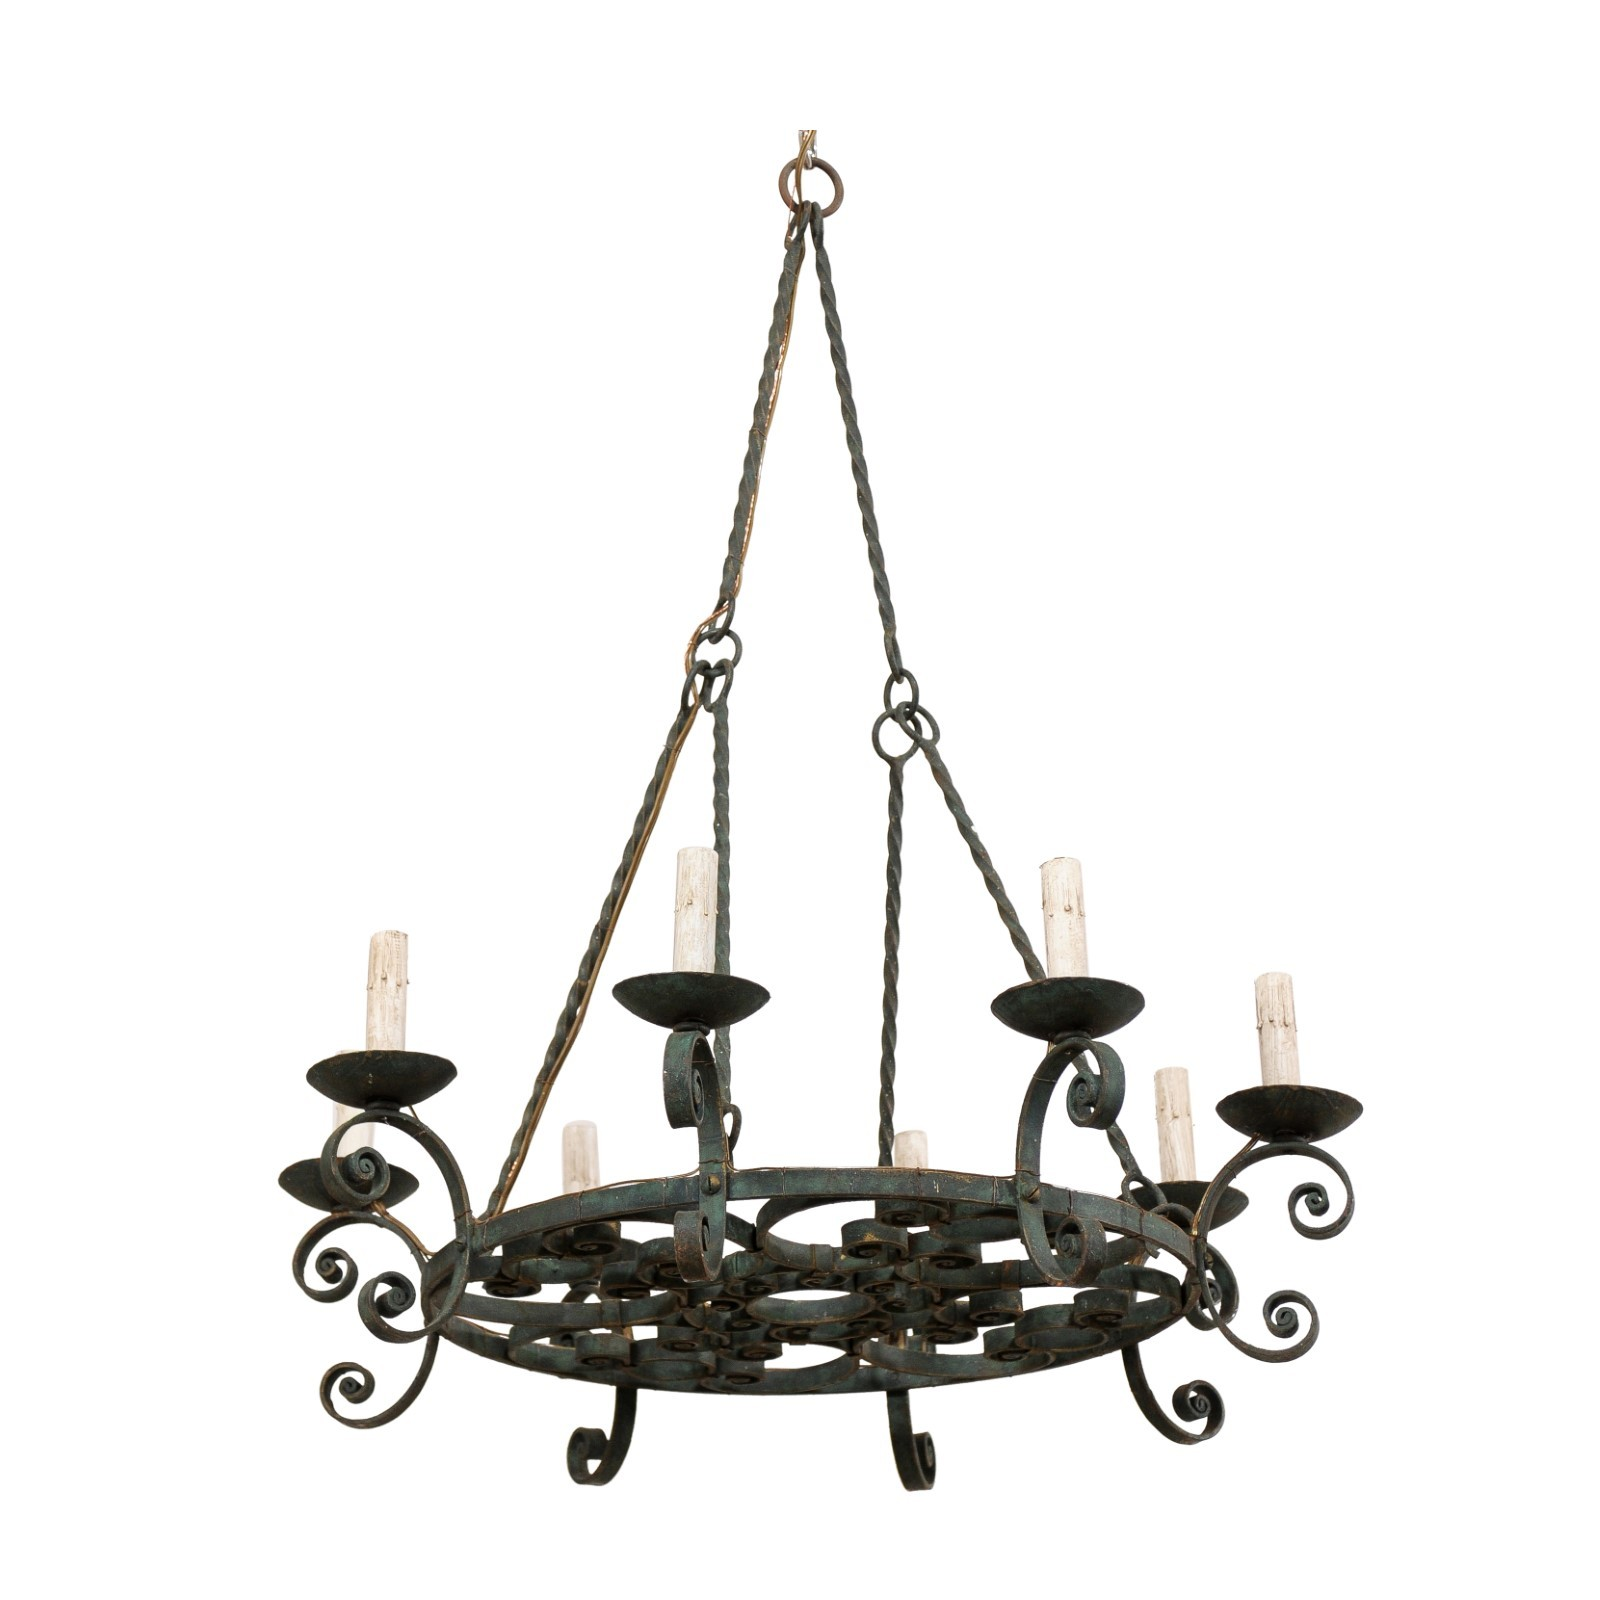 French Circular Painted Iron Chandelier